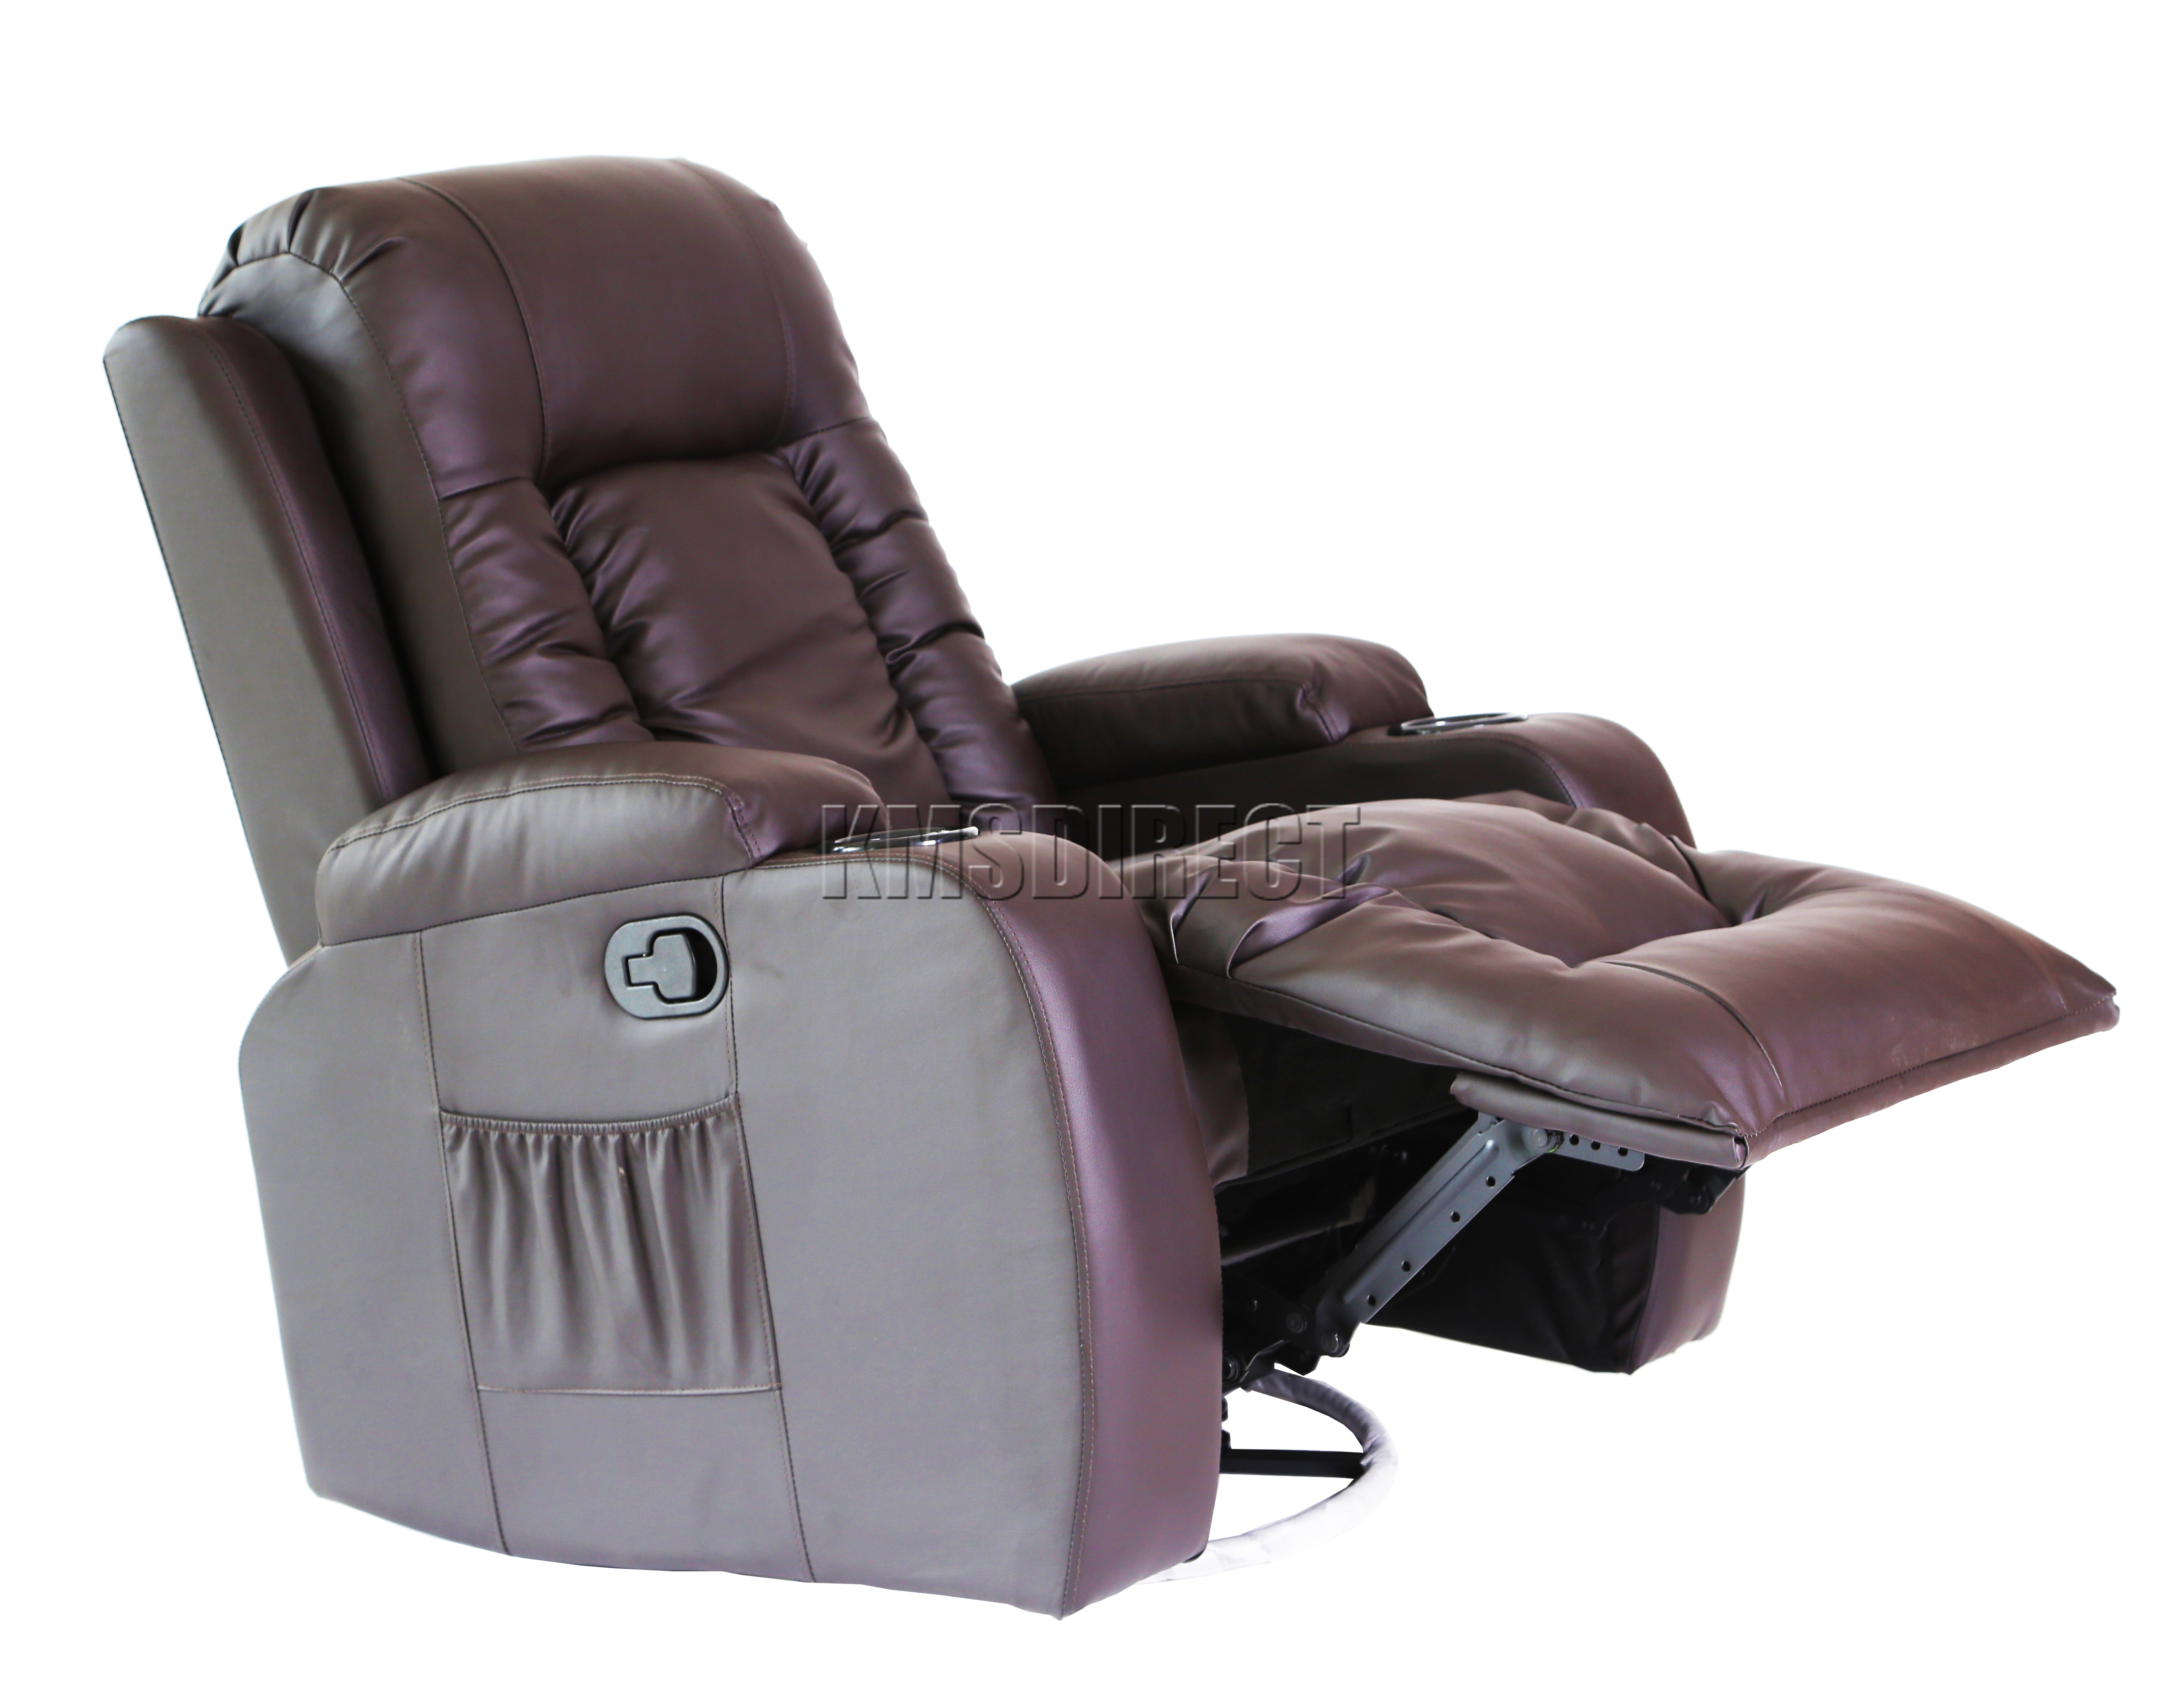 brown leather recliner sofa uk sectional sofas foxhunter massage cinema chair